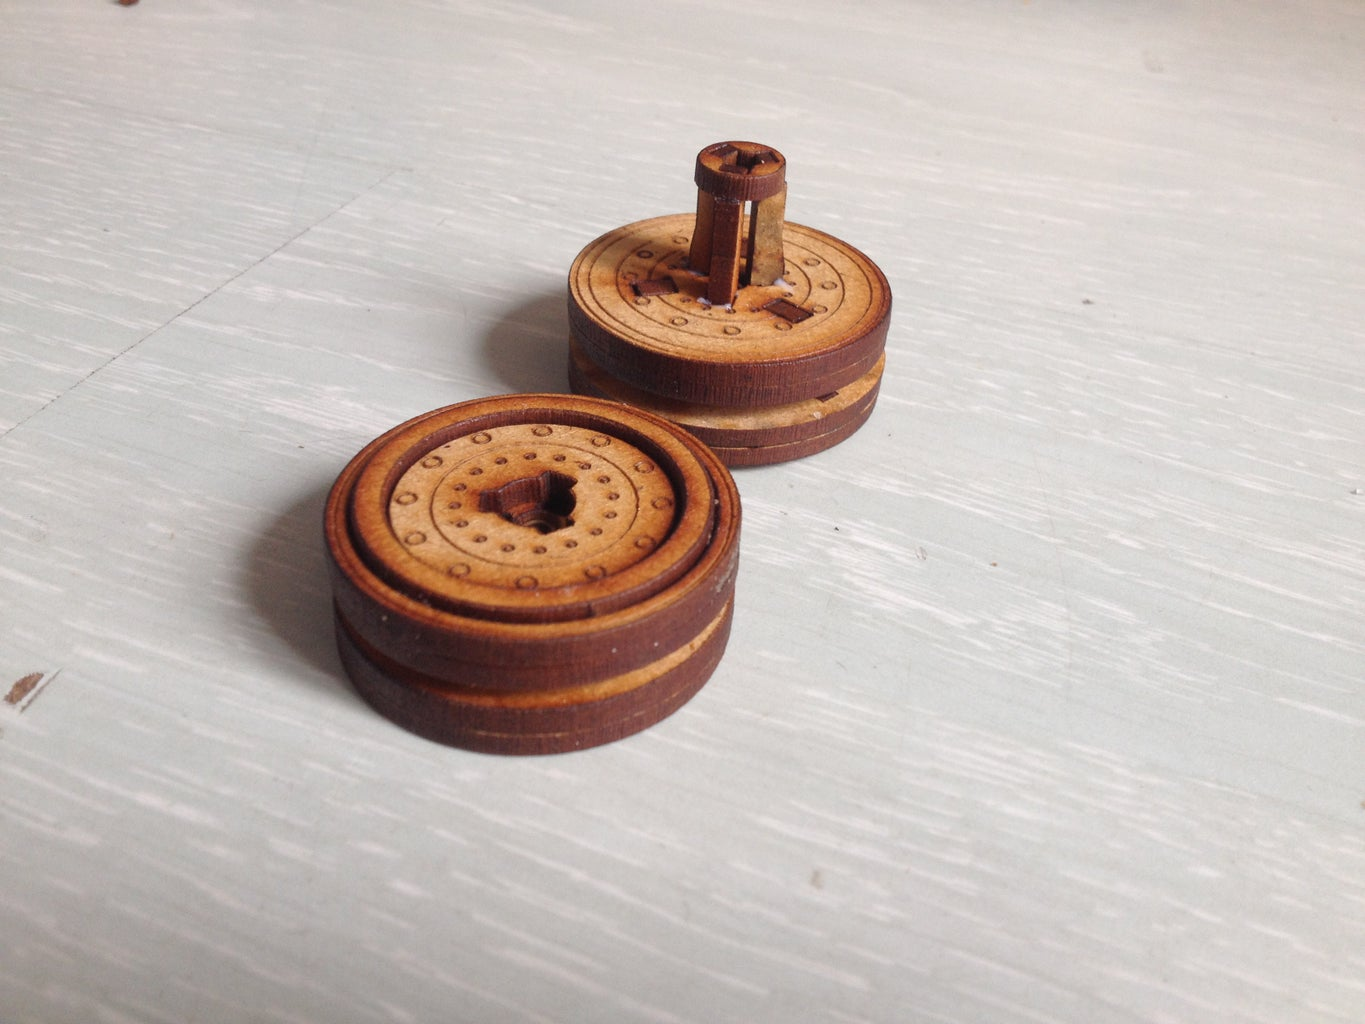 The Support Wheels